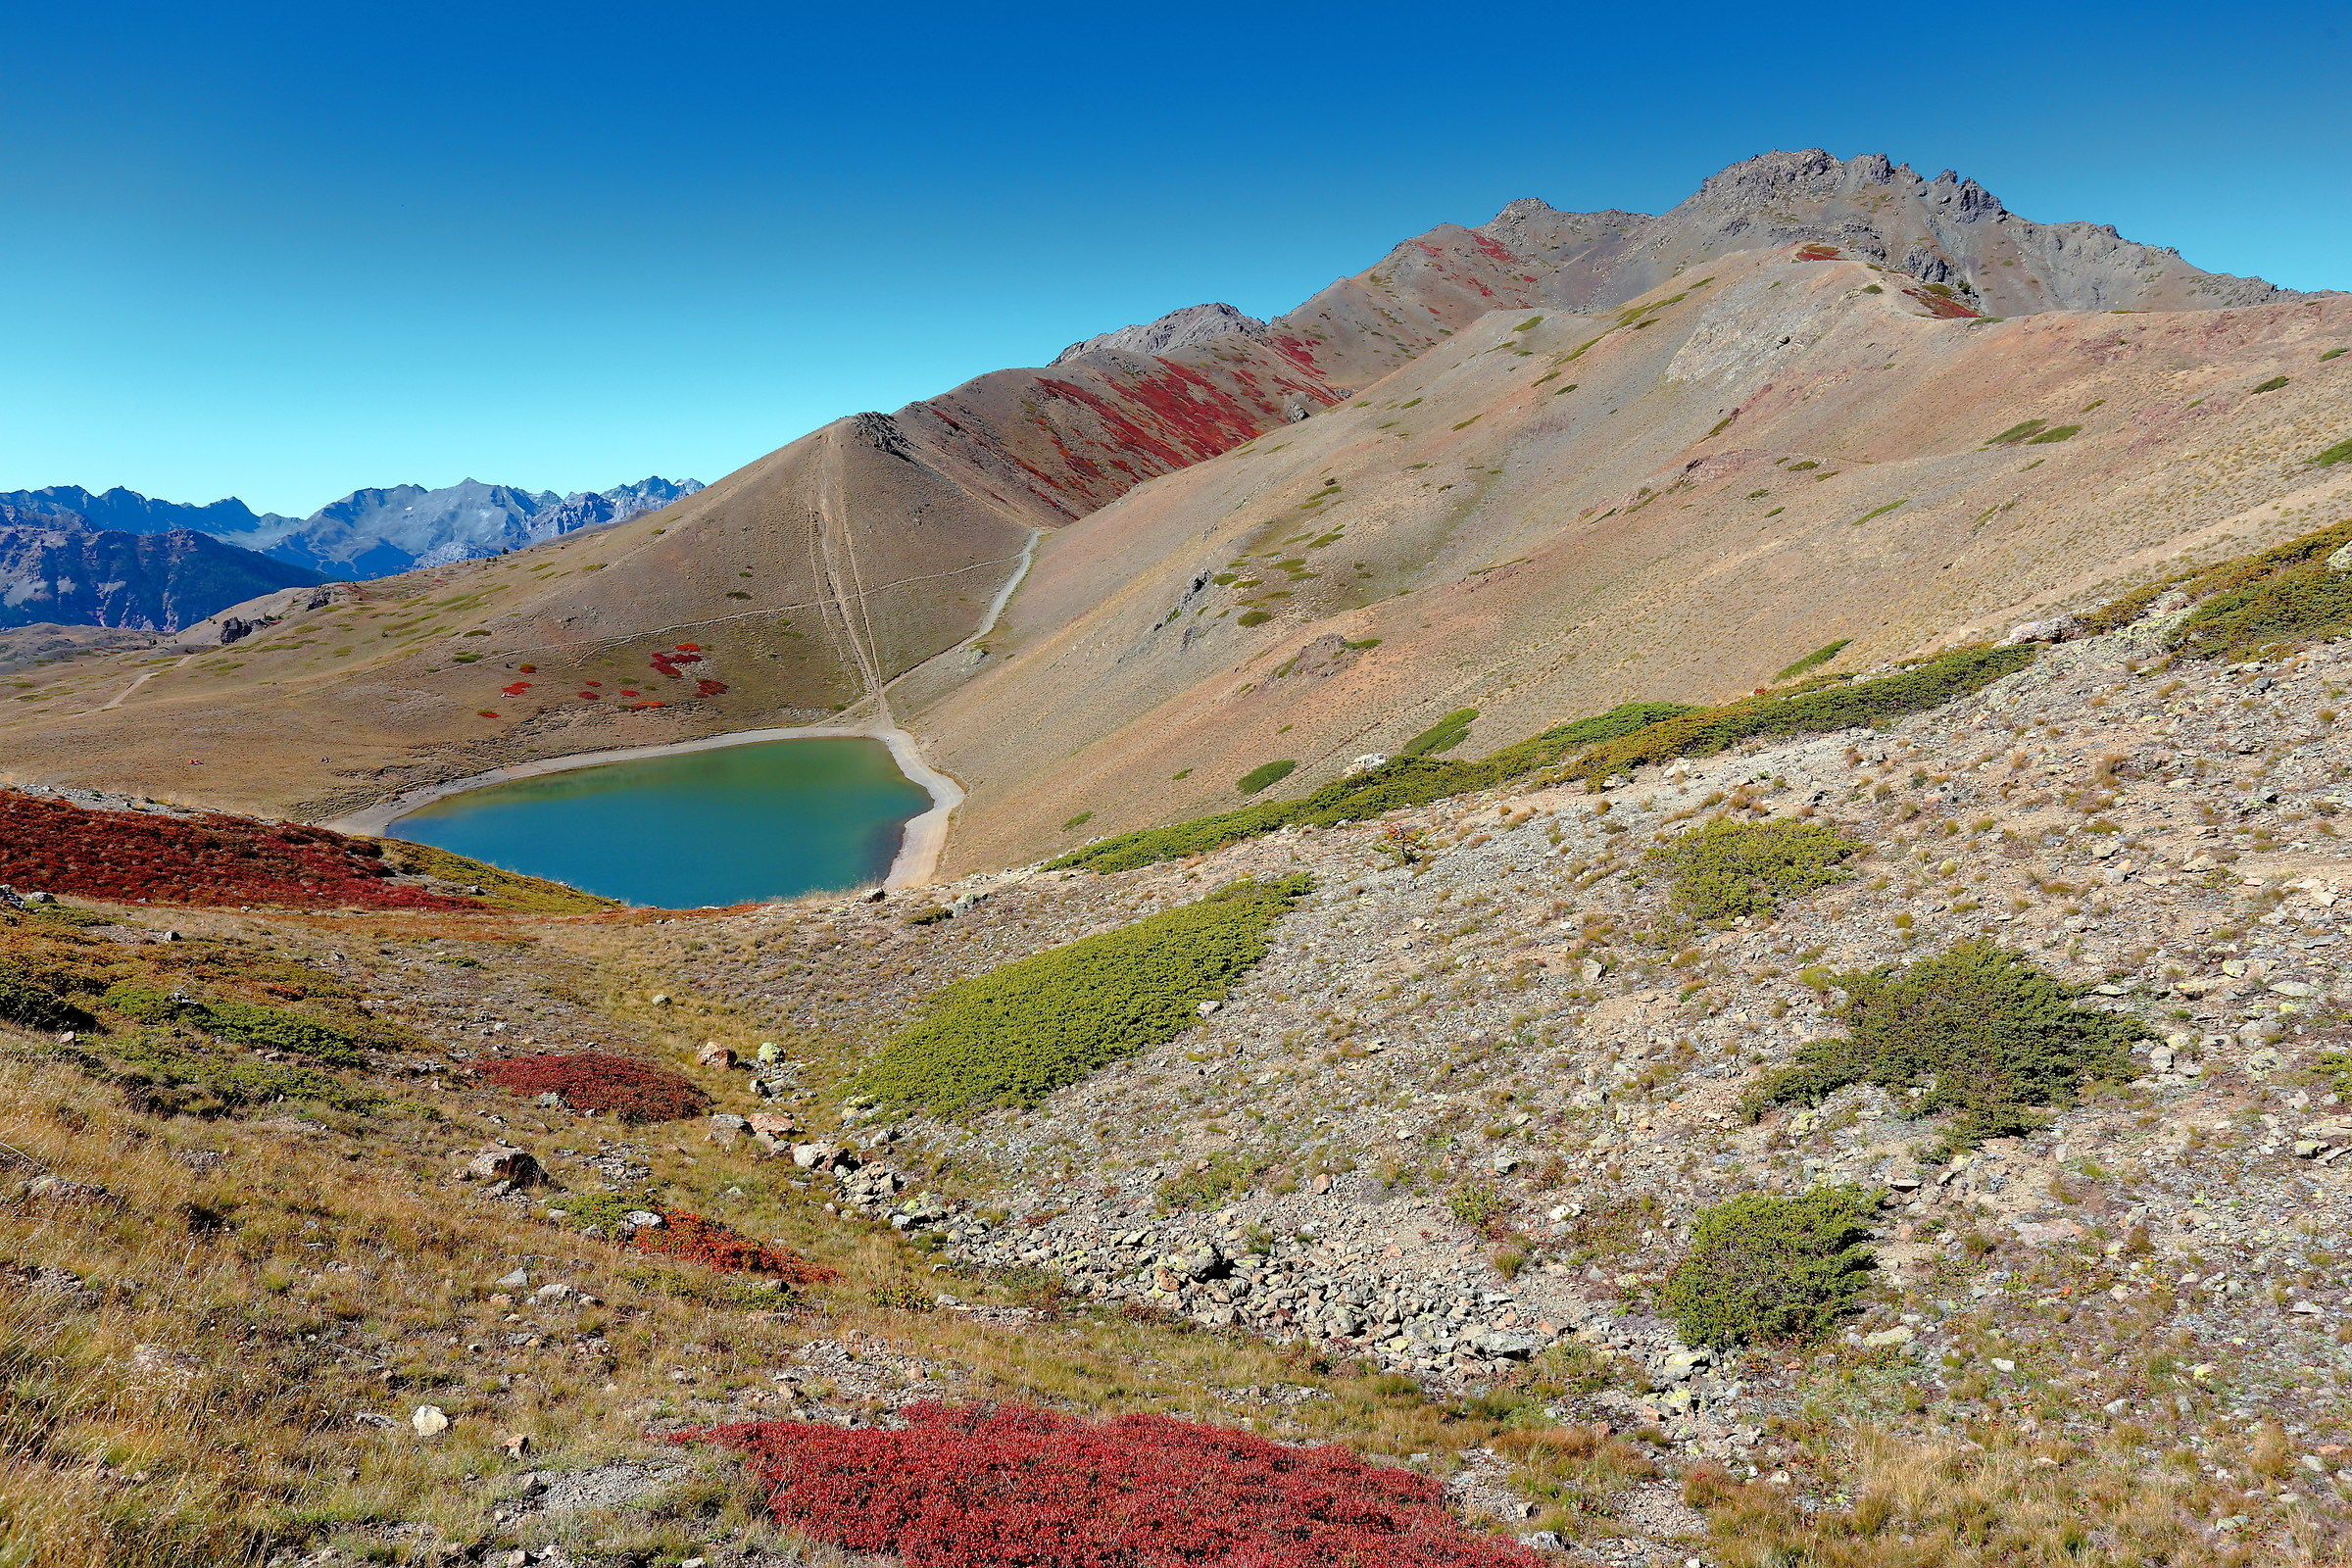 The 7 colors Lake...